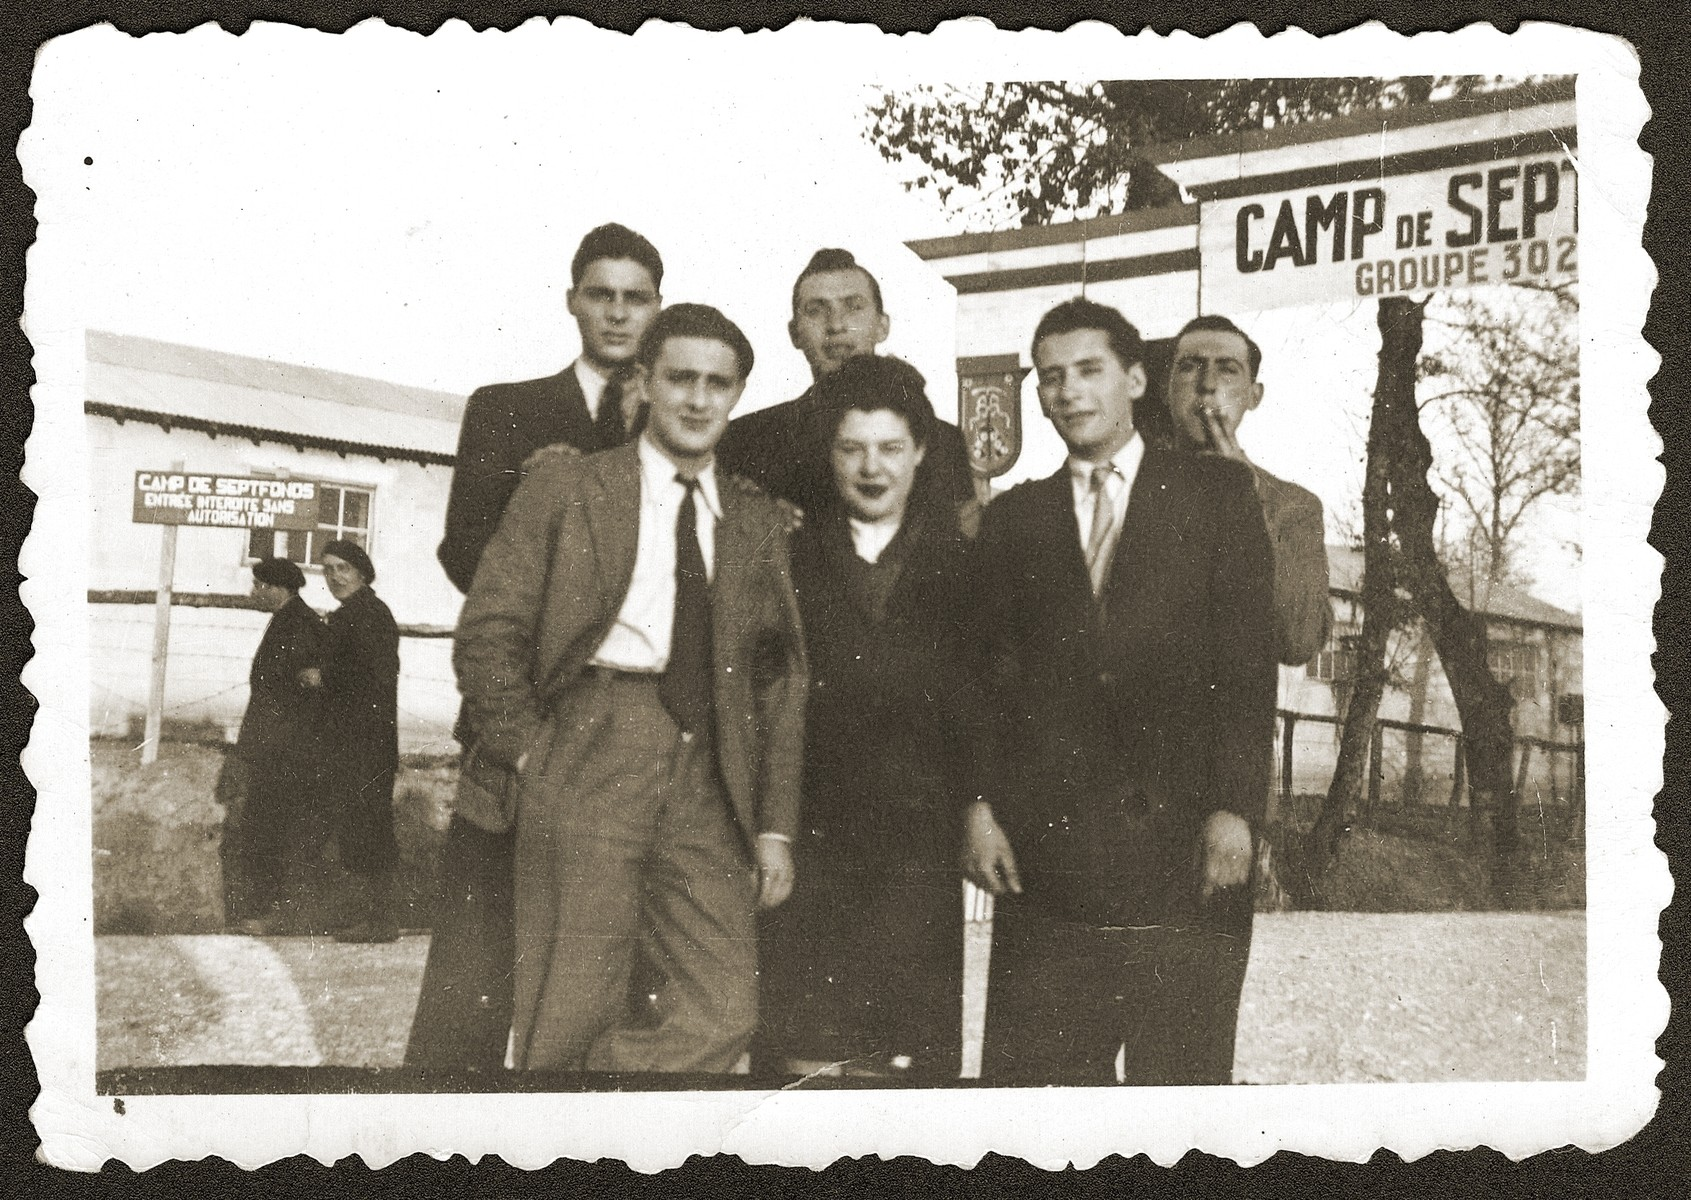 Friends visit Armand Rubinsztejn, first row, right, at labor camp Septfonds.